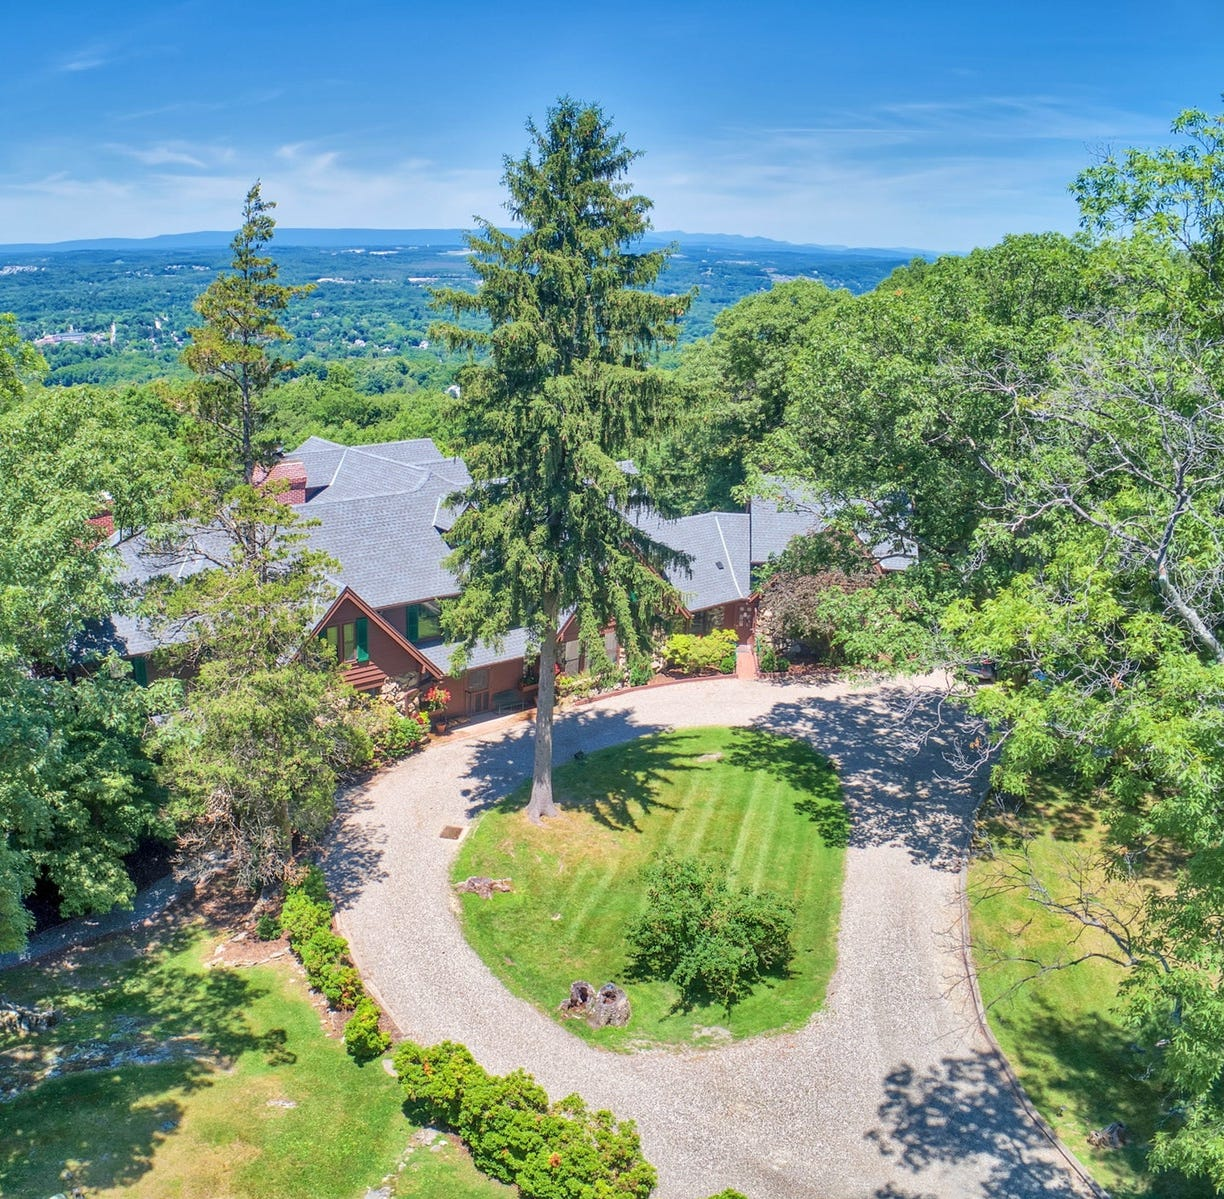 Army general's Cornwall-on-Hudson estate on the market for first time in more than 100 years